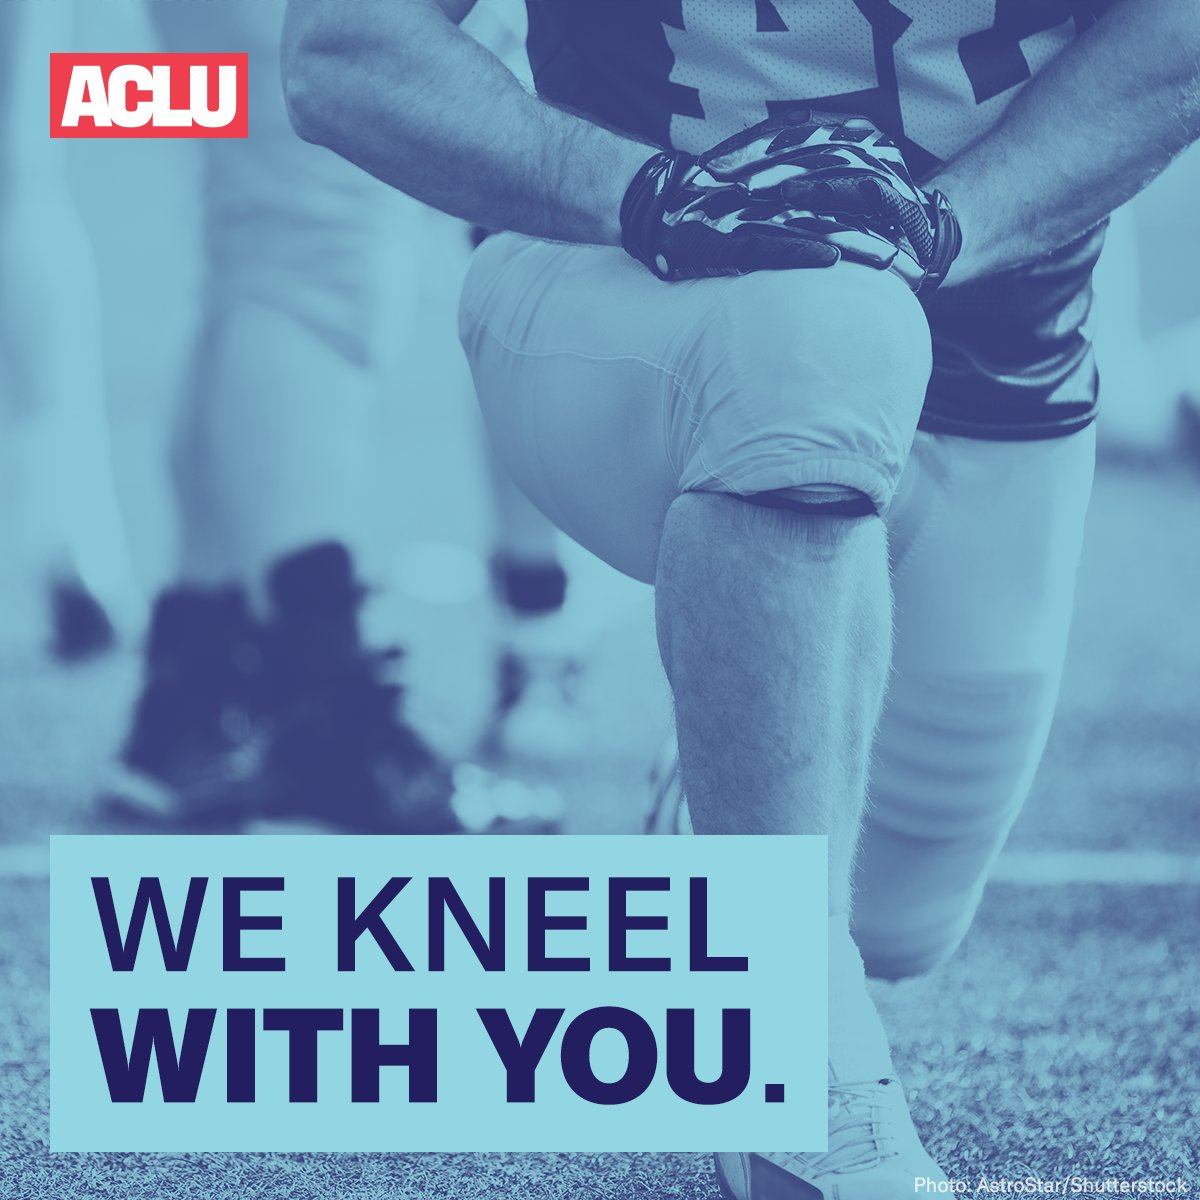 RT @ACLU: To everyone who protests police brutality and systemic racism, we kneel with you. #EaglesvsPatriots https://t.co/Y1EZpnPnSw